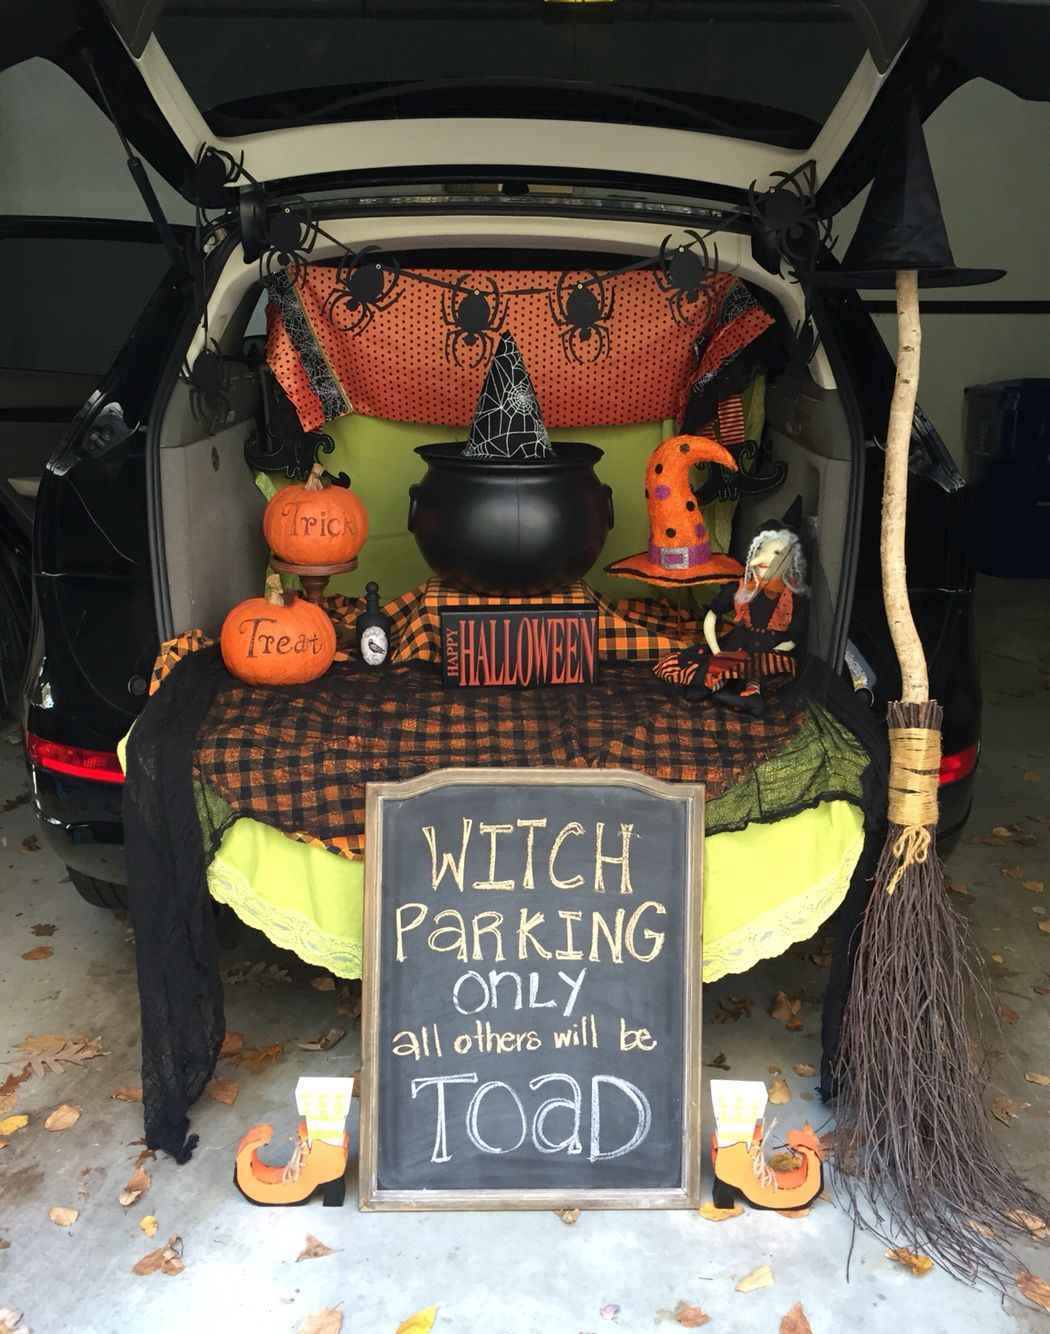 Witches hang out. Trunk or treat.